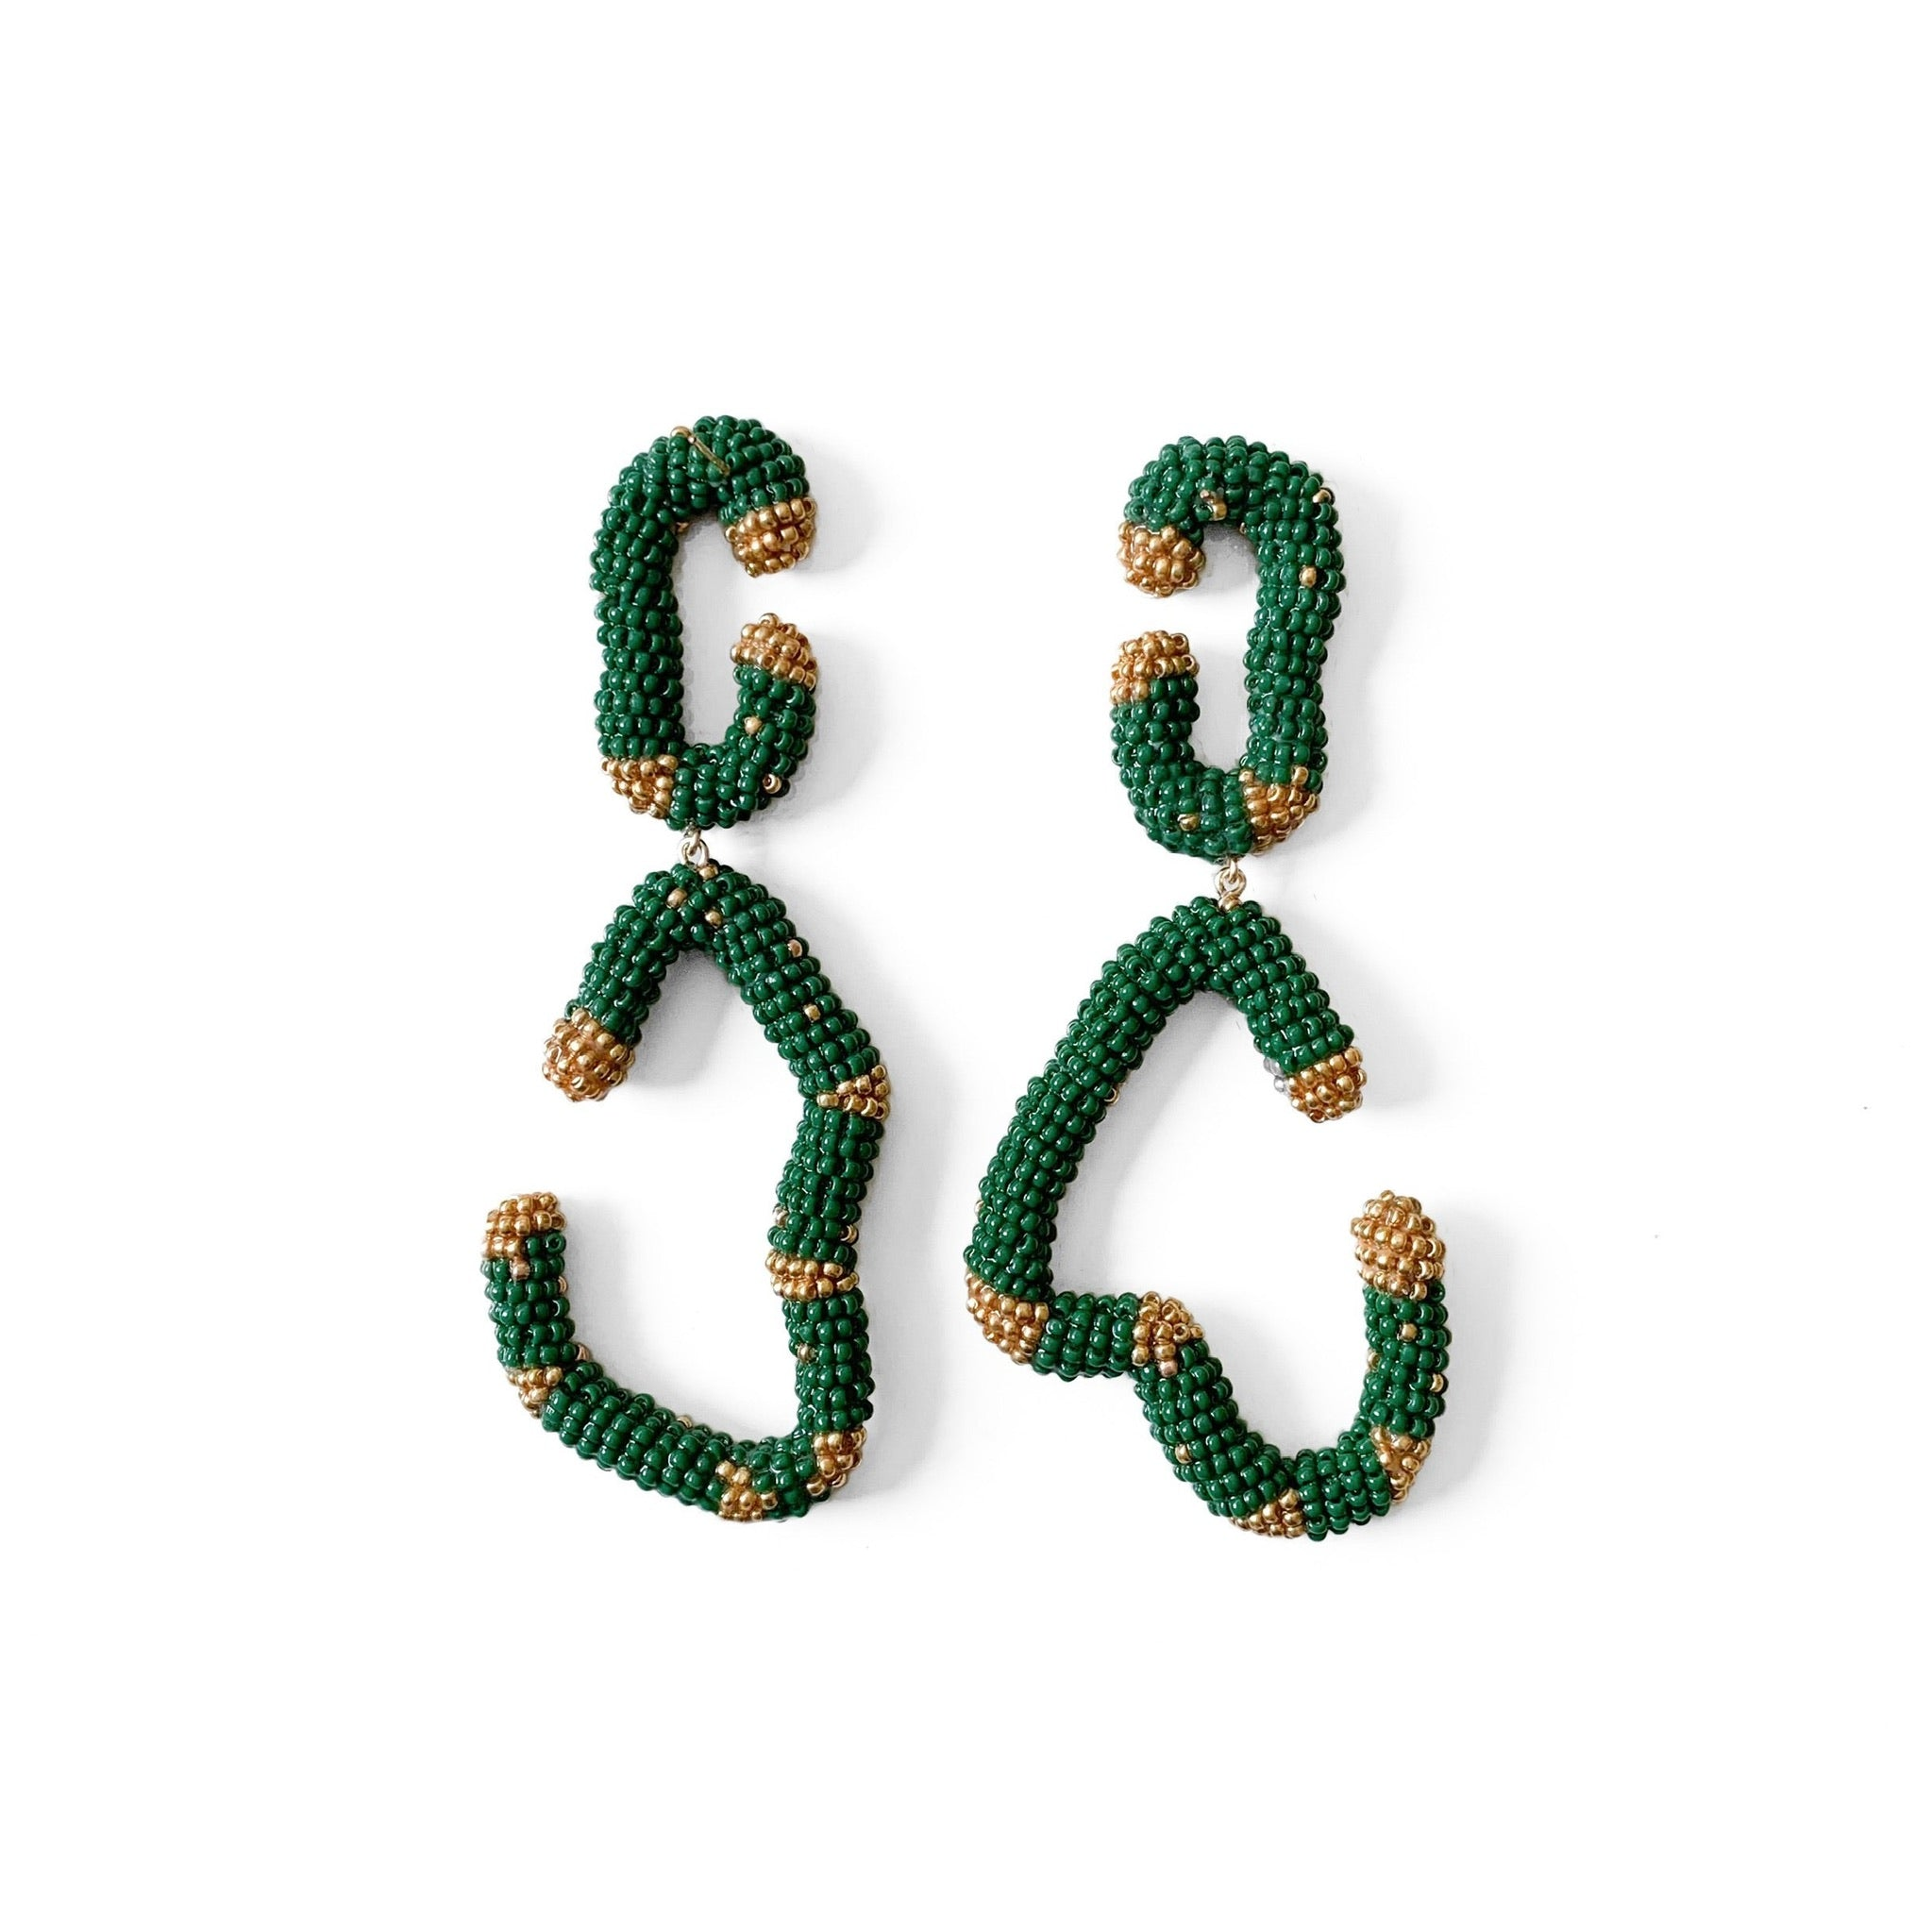 HANDMADE BEADED EARRINGS , Carolina herrera, oscar de la renta, asymmetric earrings , statement earrings , maxi earrings